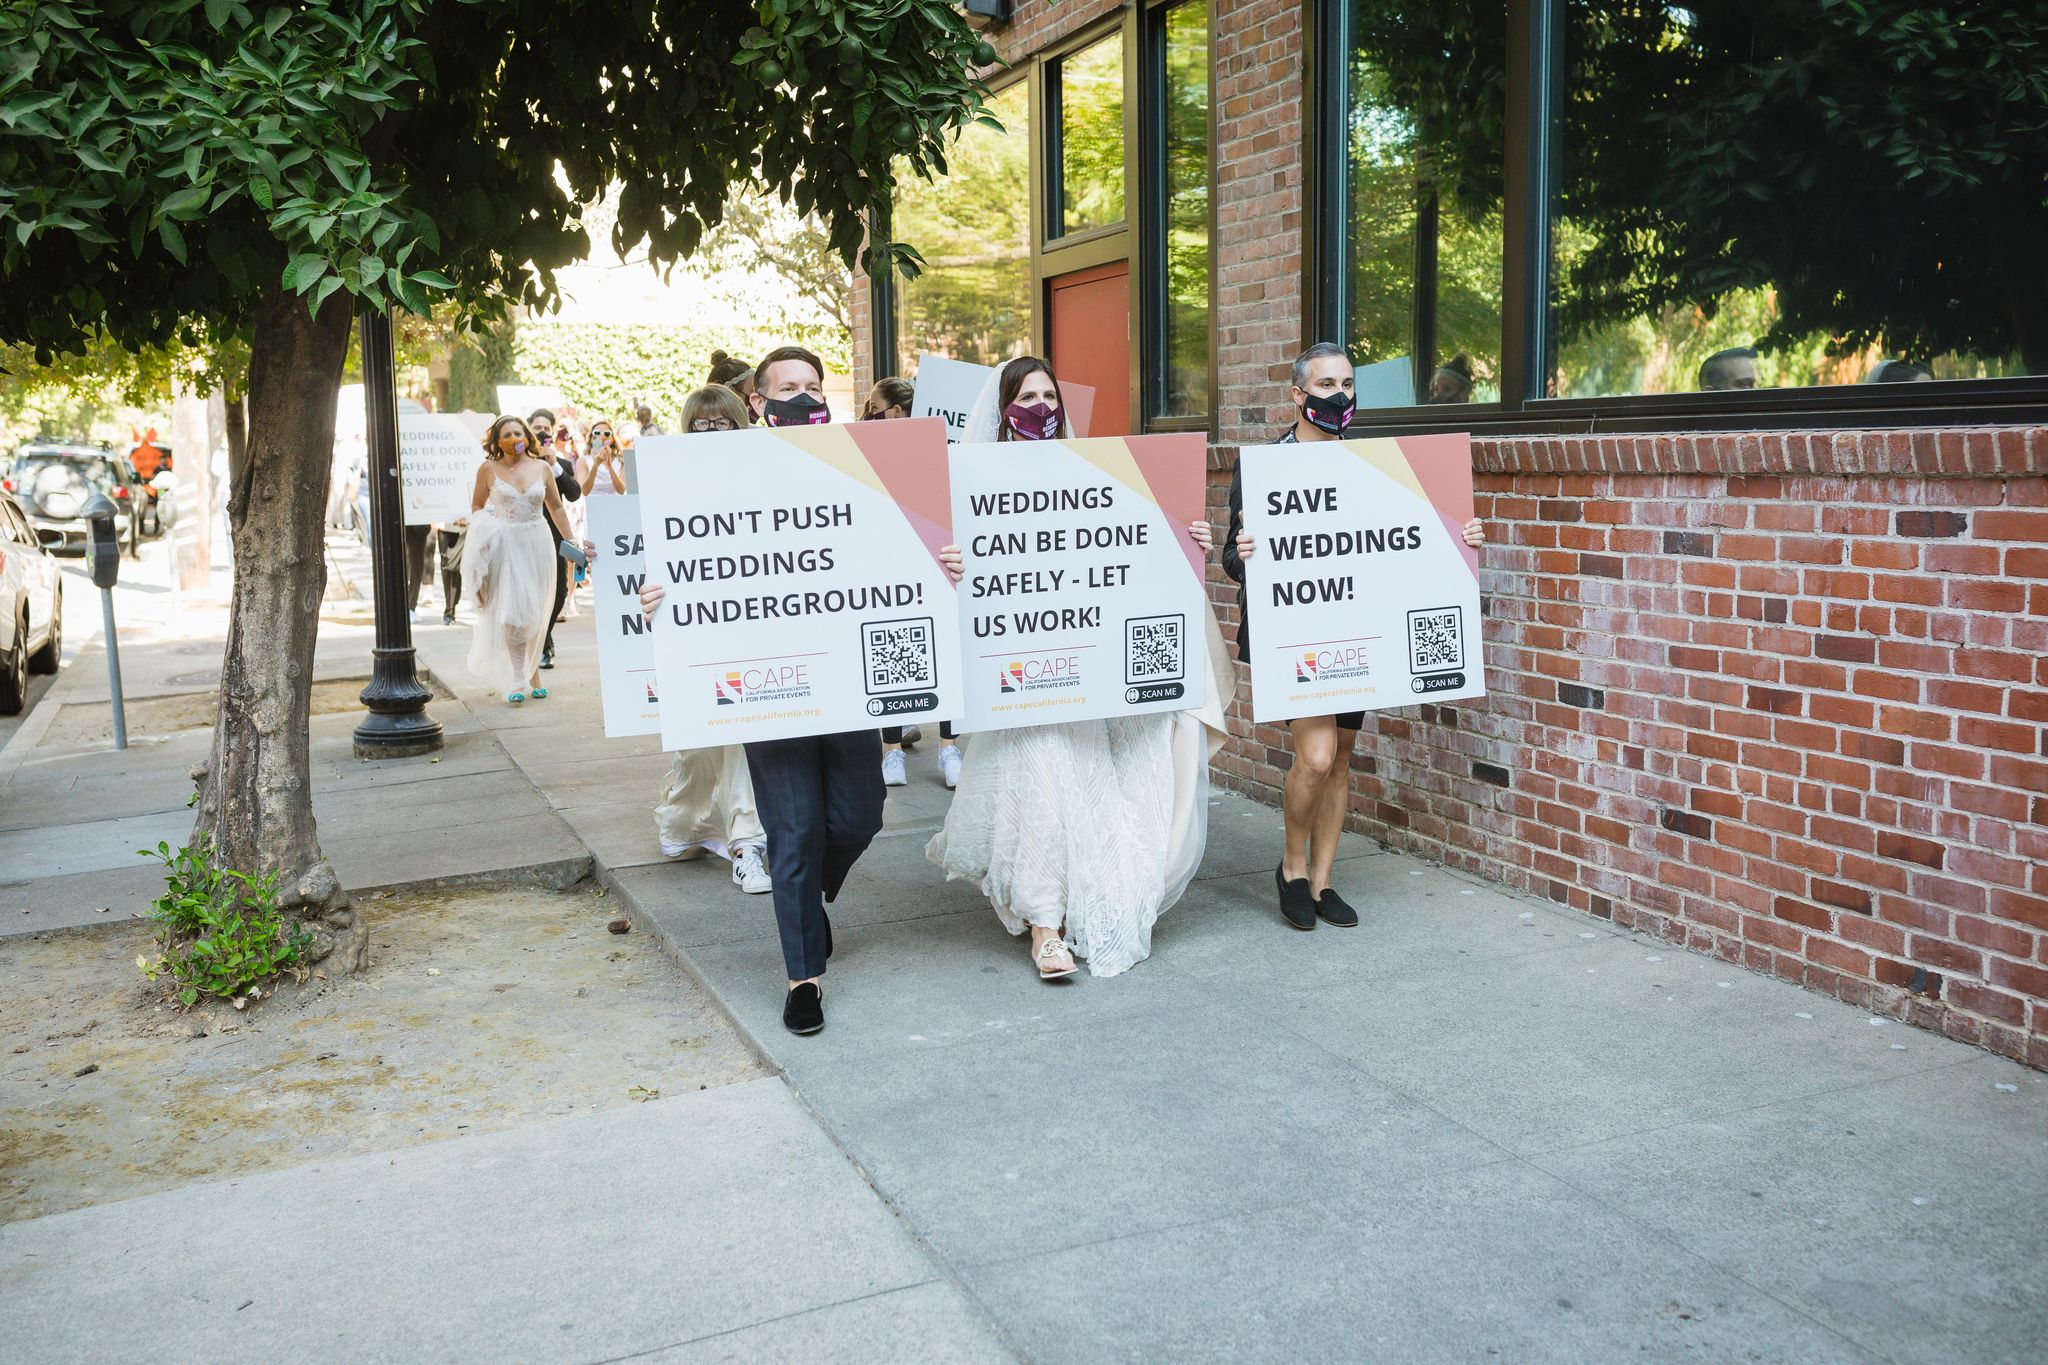 Wedding events community protests at California capitol